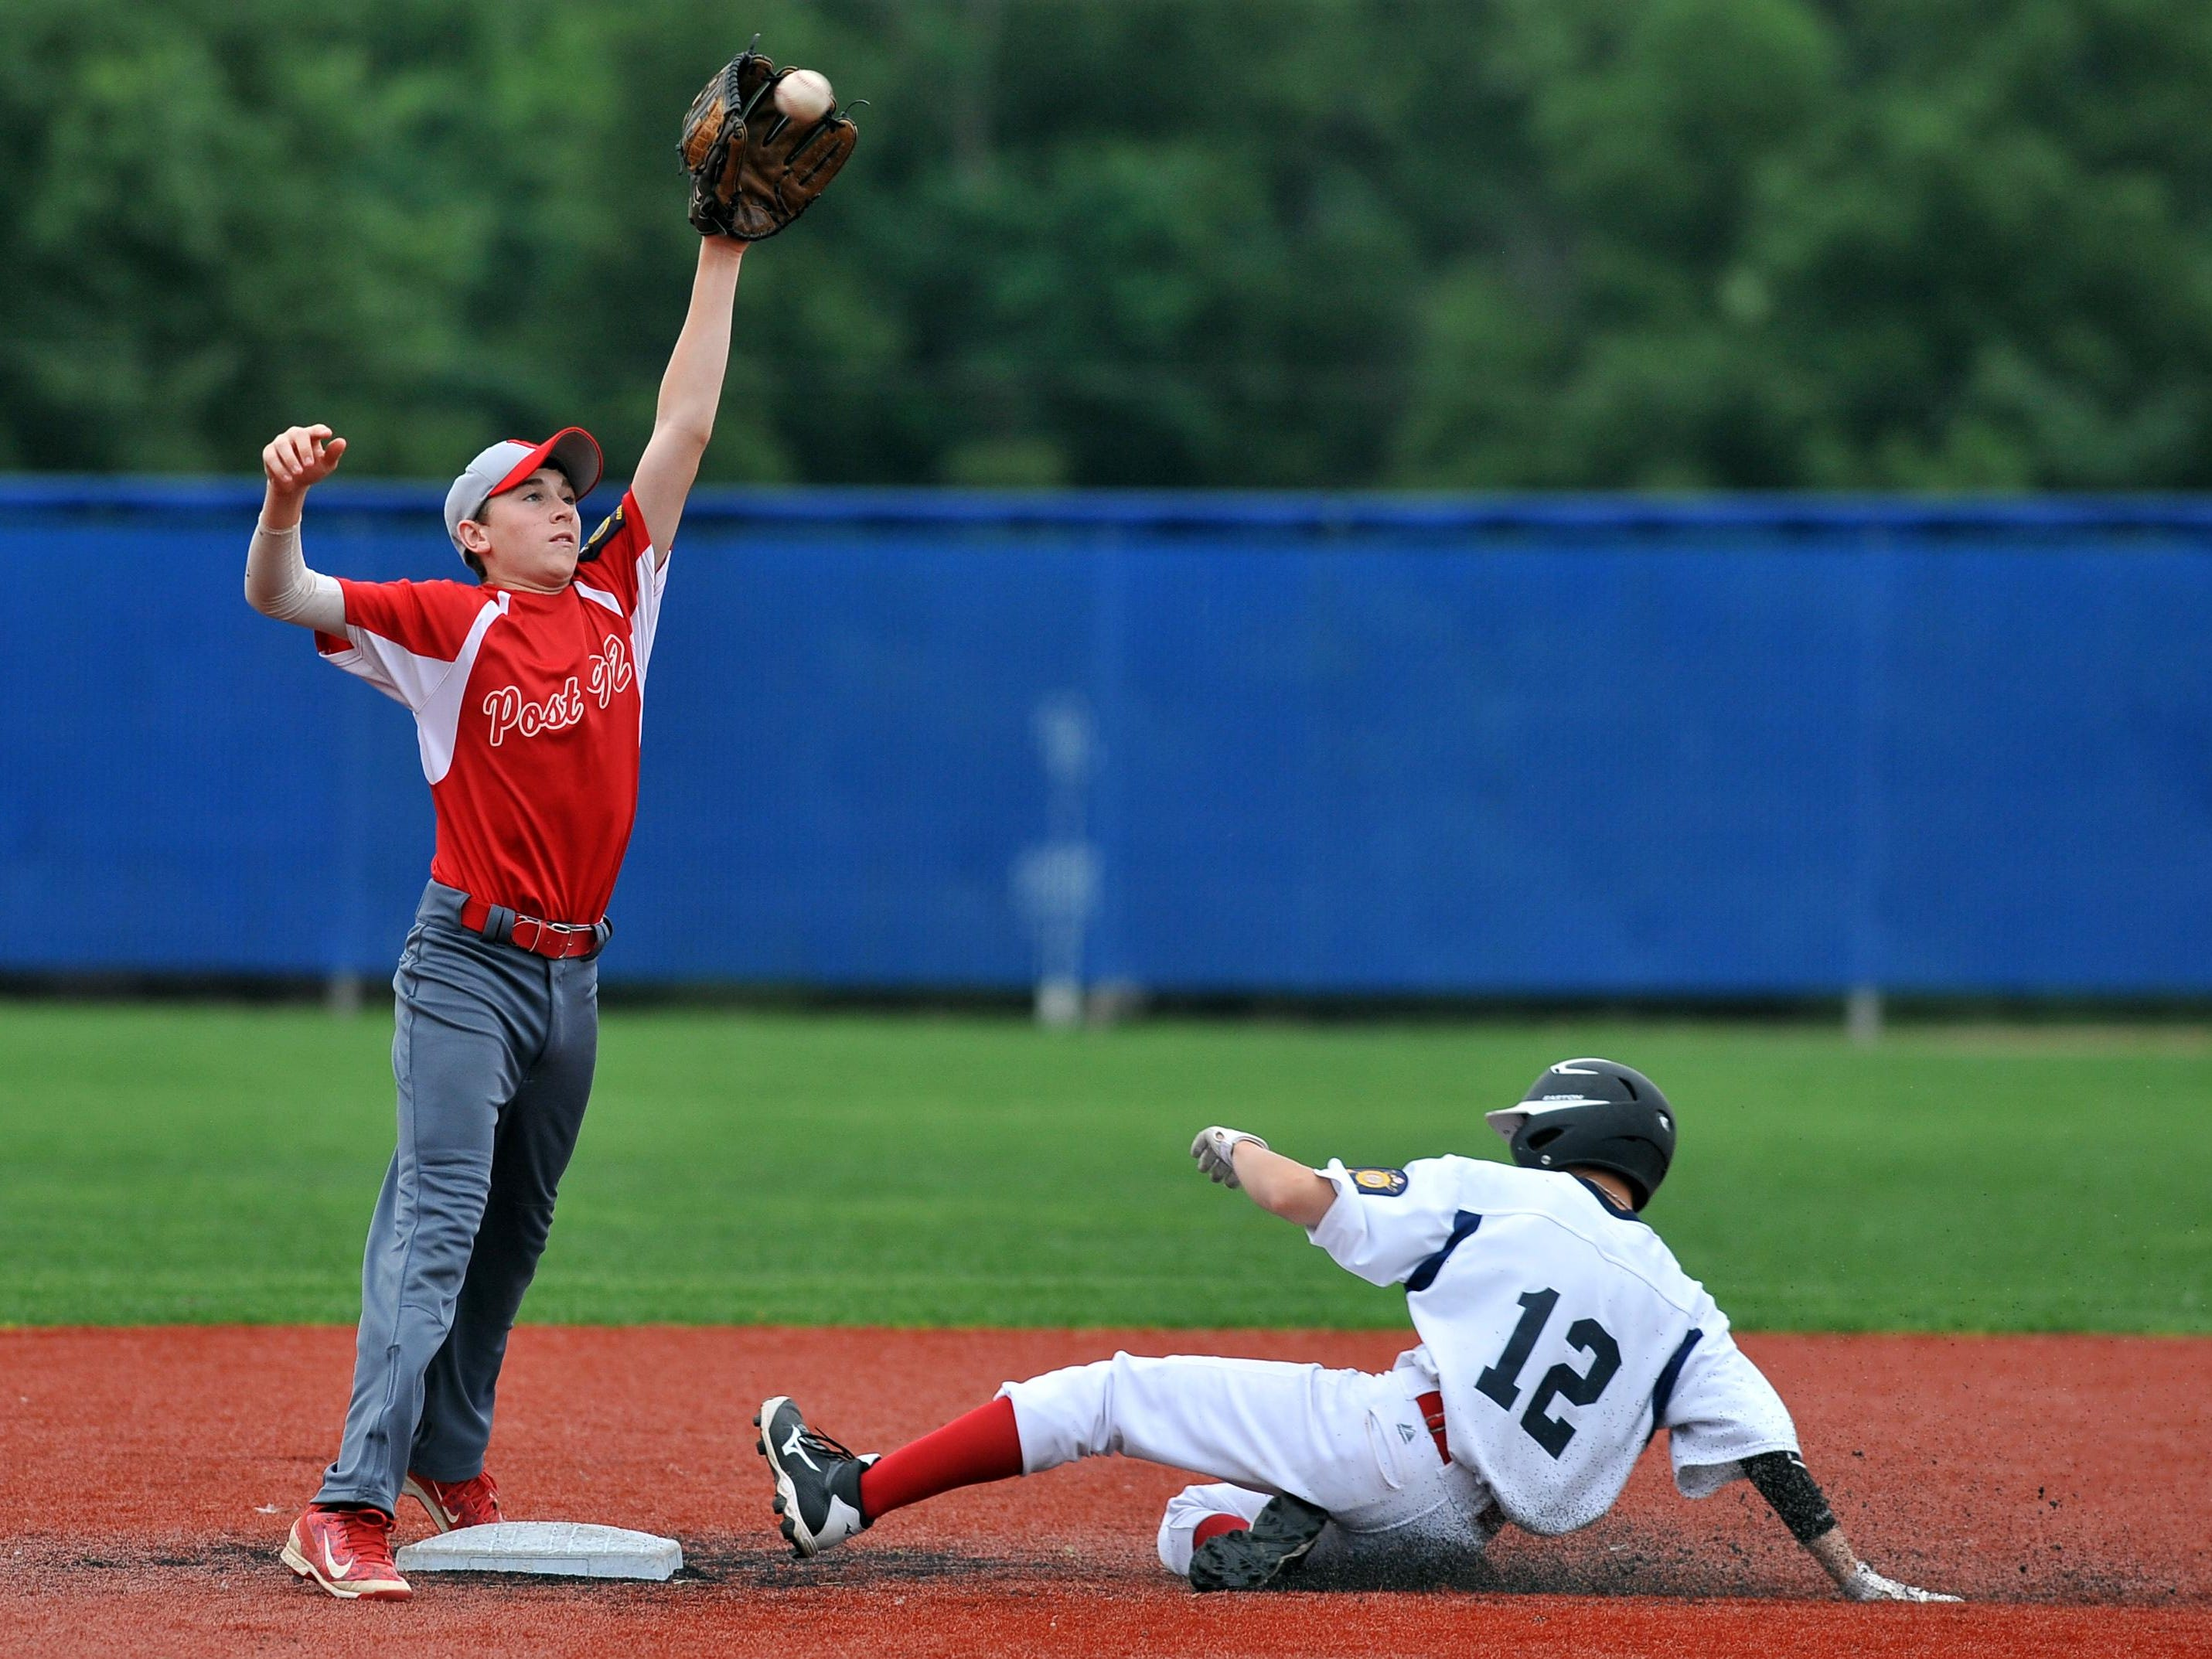 Utica Post 92 Juniors second baseman Dillion Carr snags a high throw as Lancaster Post 11's Tyler Lanning steals second base Wednesday night at Beavers Field during the state tournament. Post 92 won the game 9-7.